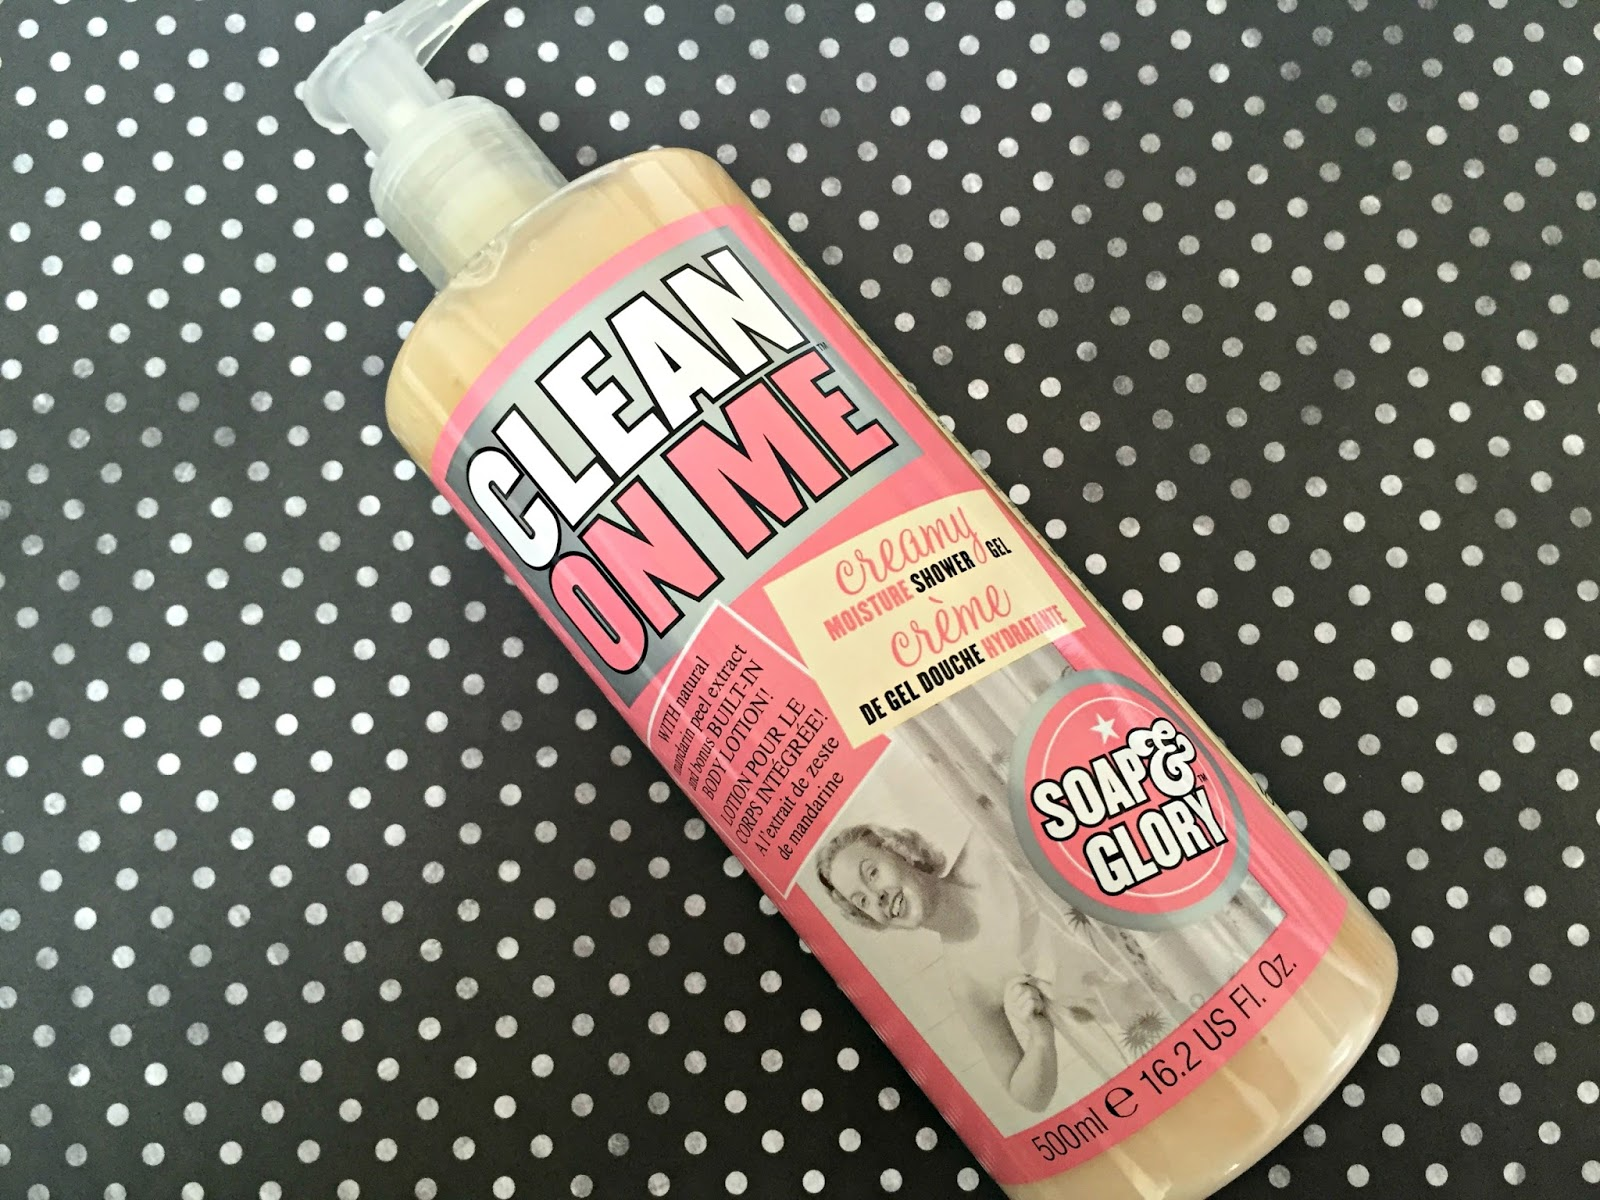 Soap & Glory Clean on Me Vegan Shower Gel